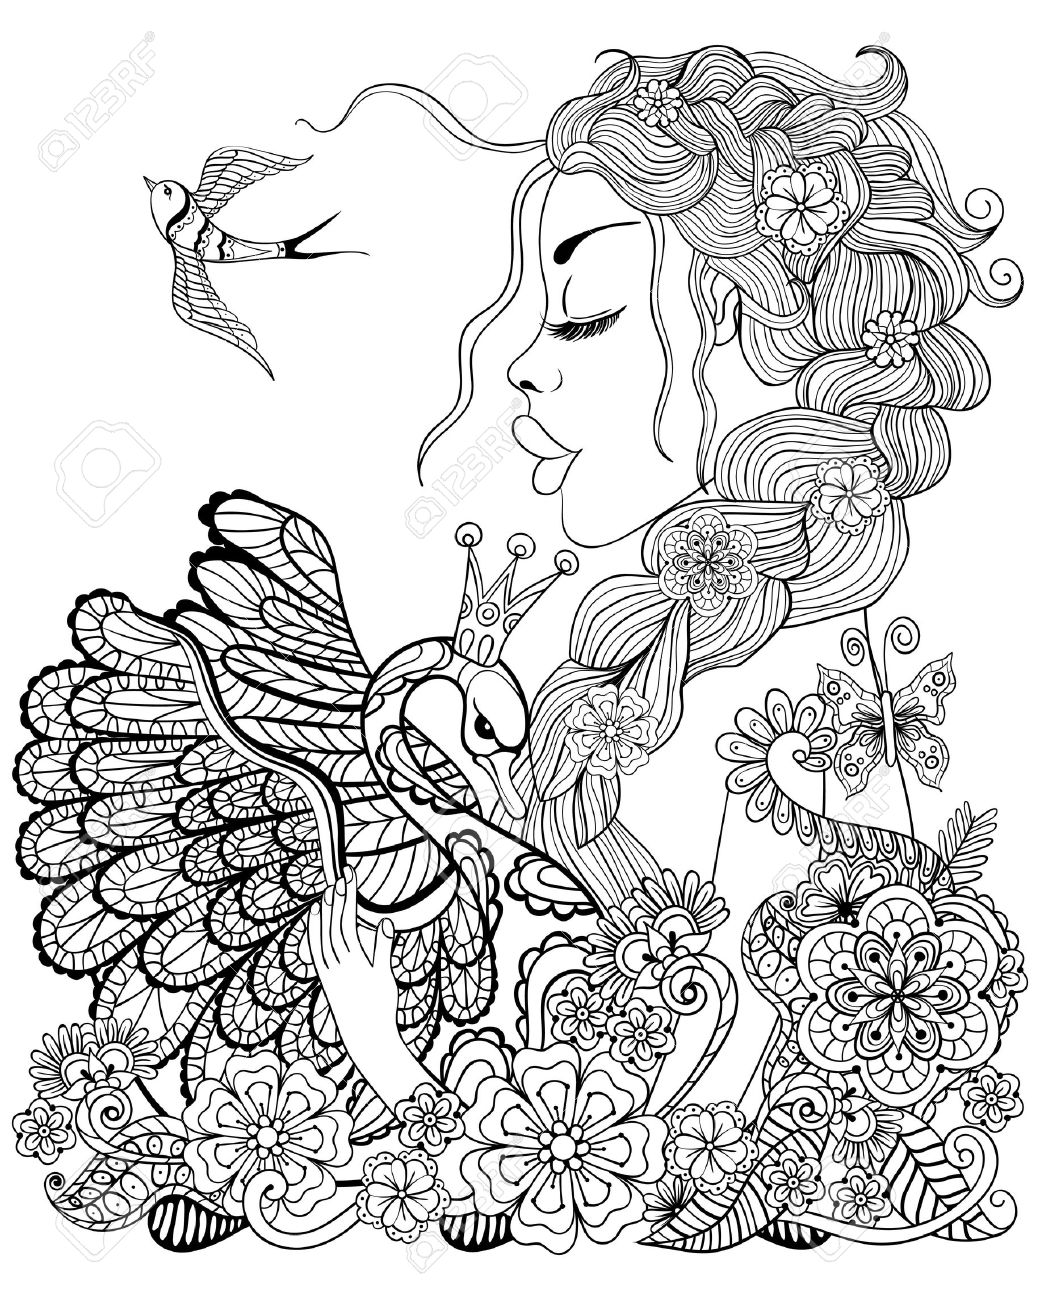 forest fairy with wreath on head hugging swan in flower for